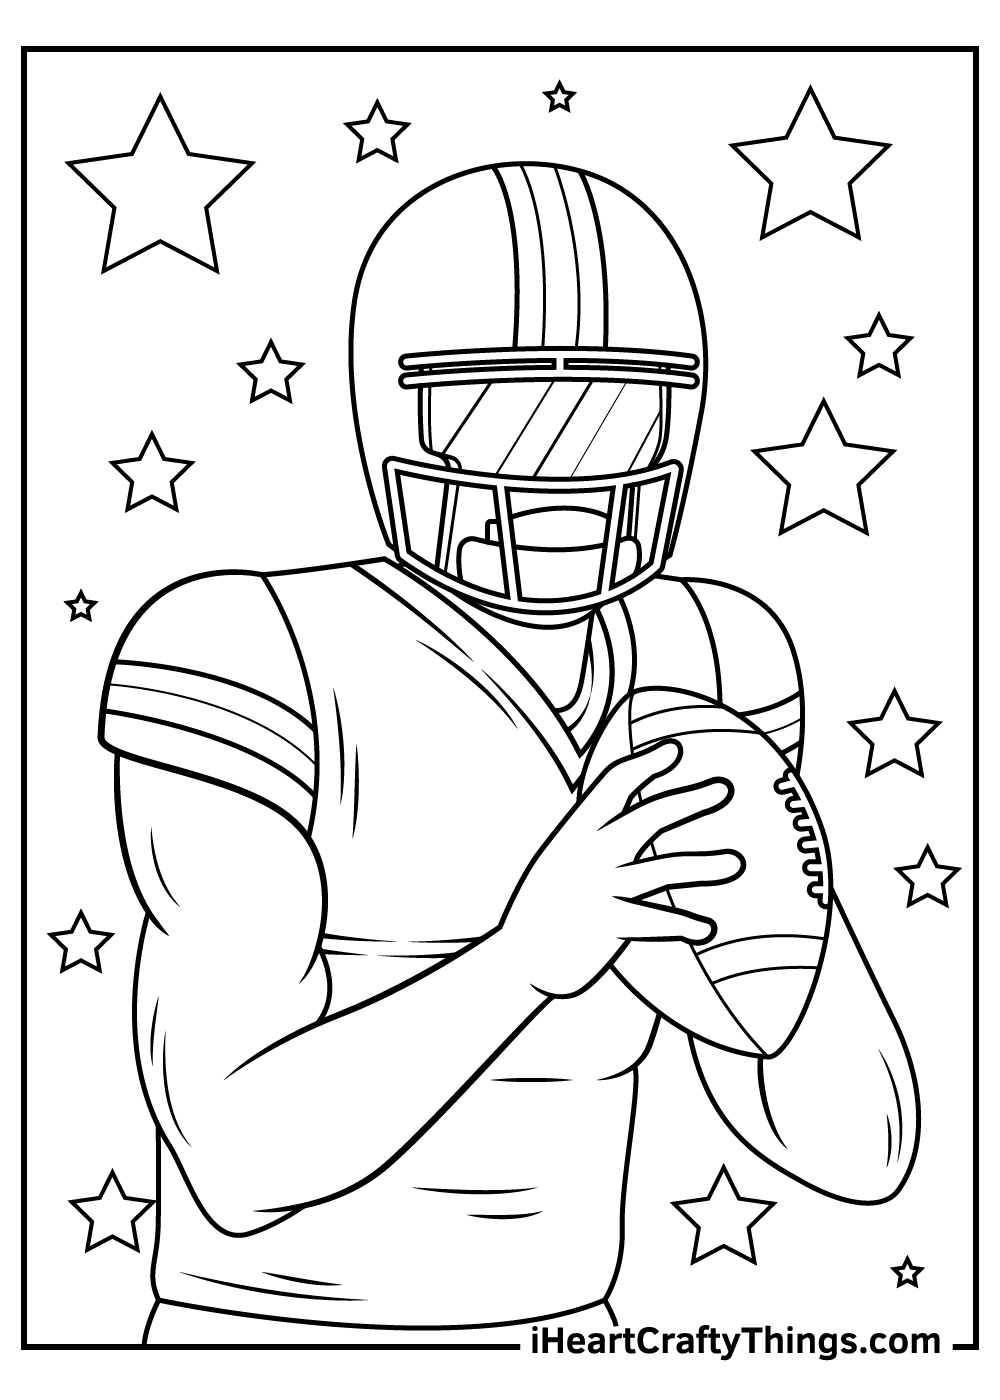 NFL coloring pages printable